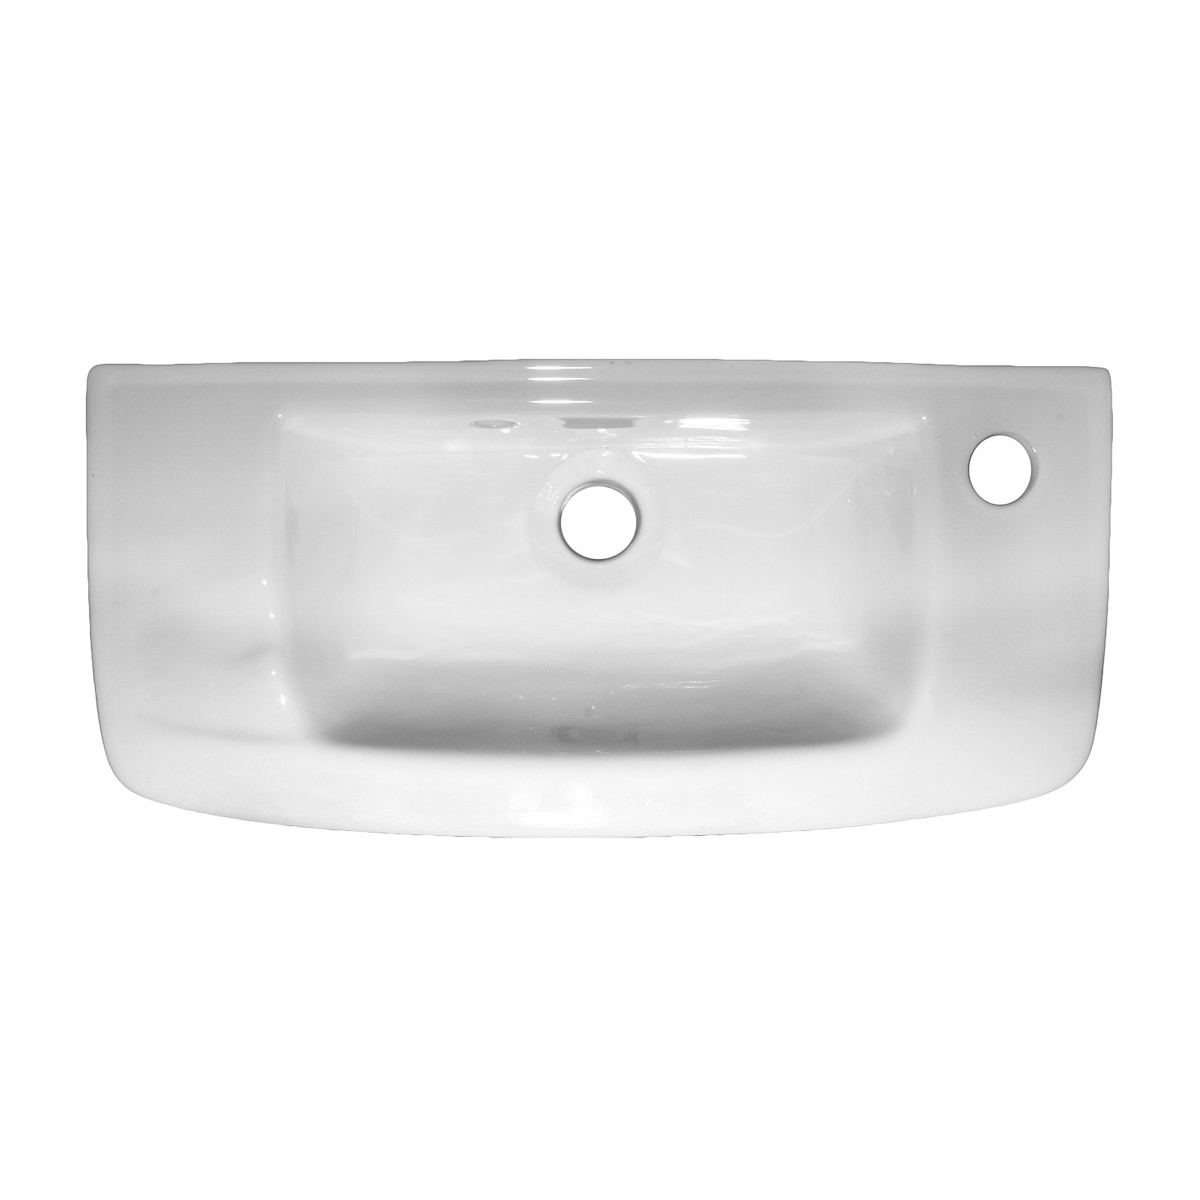 Bathroom Wall Mount Sink in White with Chrome Faucet and Drain small wall mount sink bathroom wall hung sink small bathroom sink